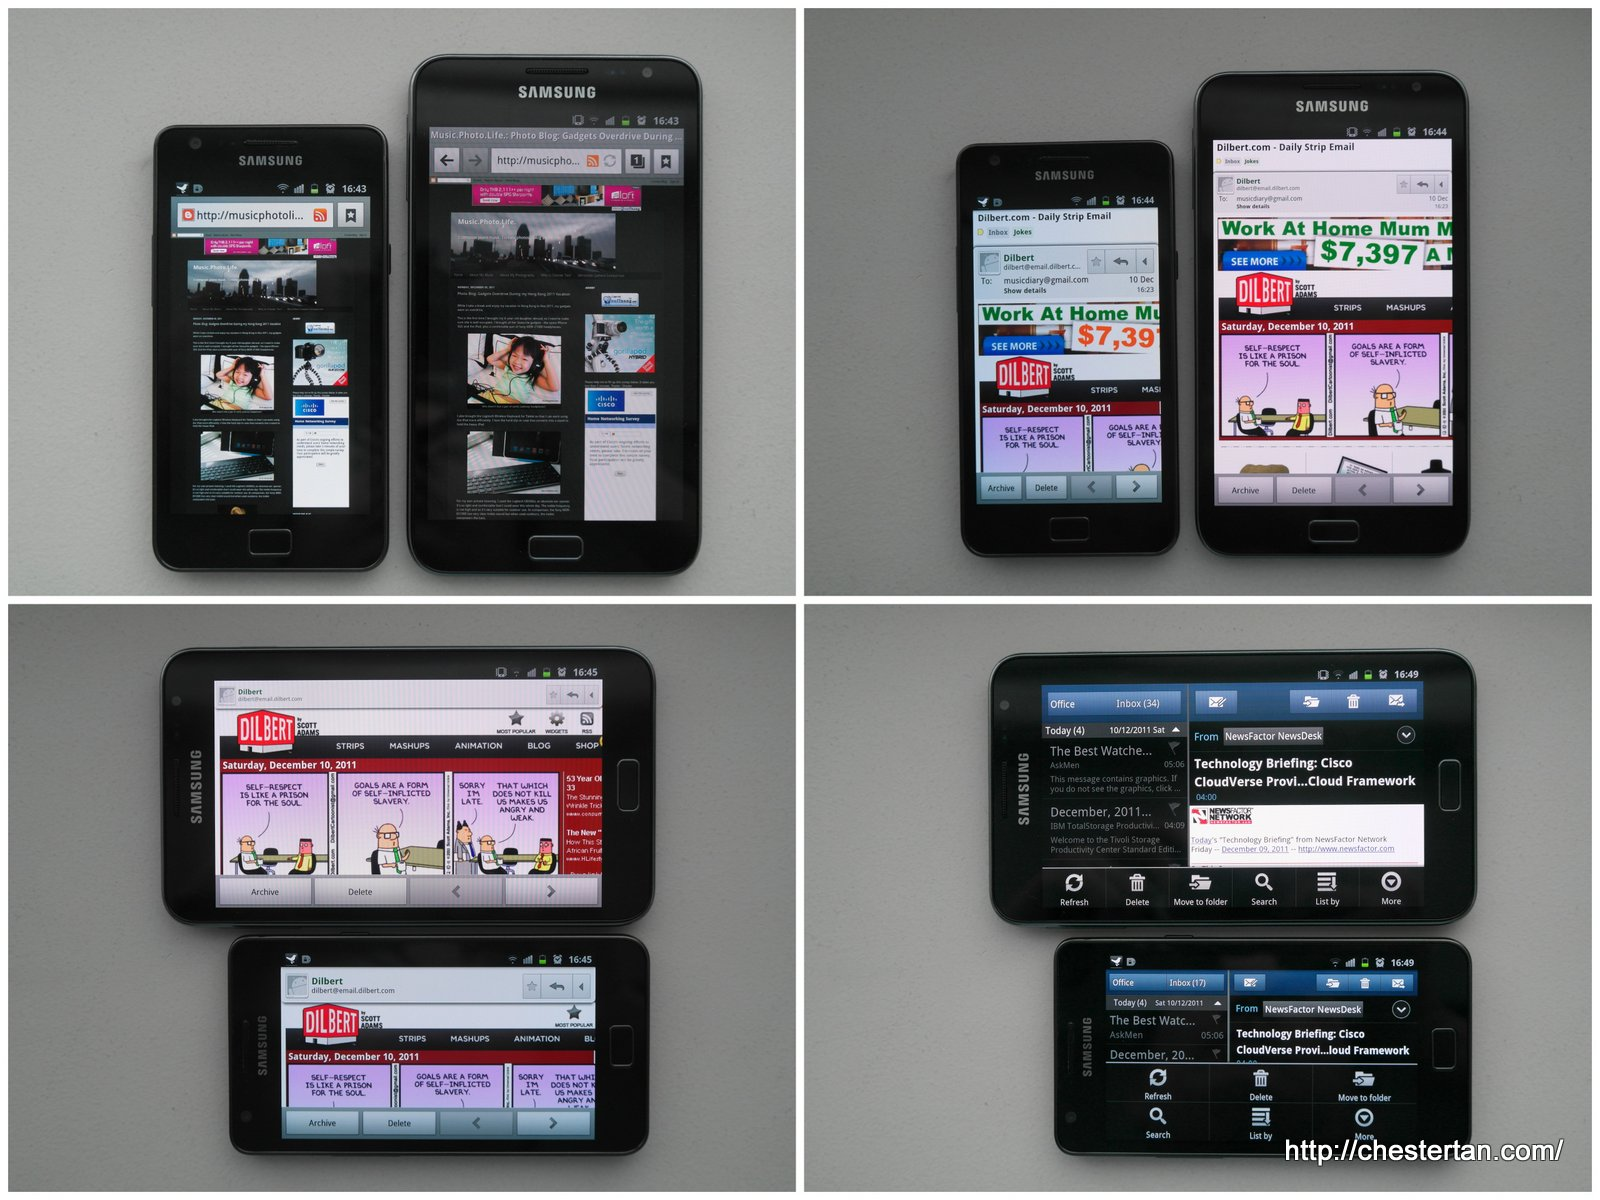 Galaxy SII's 800x480 vs. Galaxy Note's 1280x800